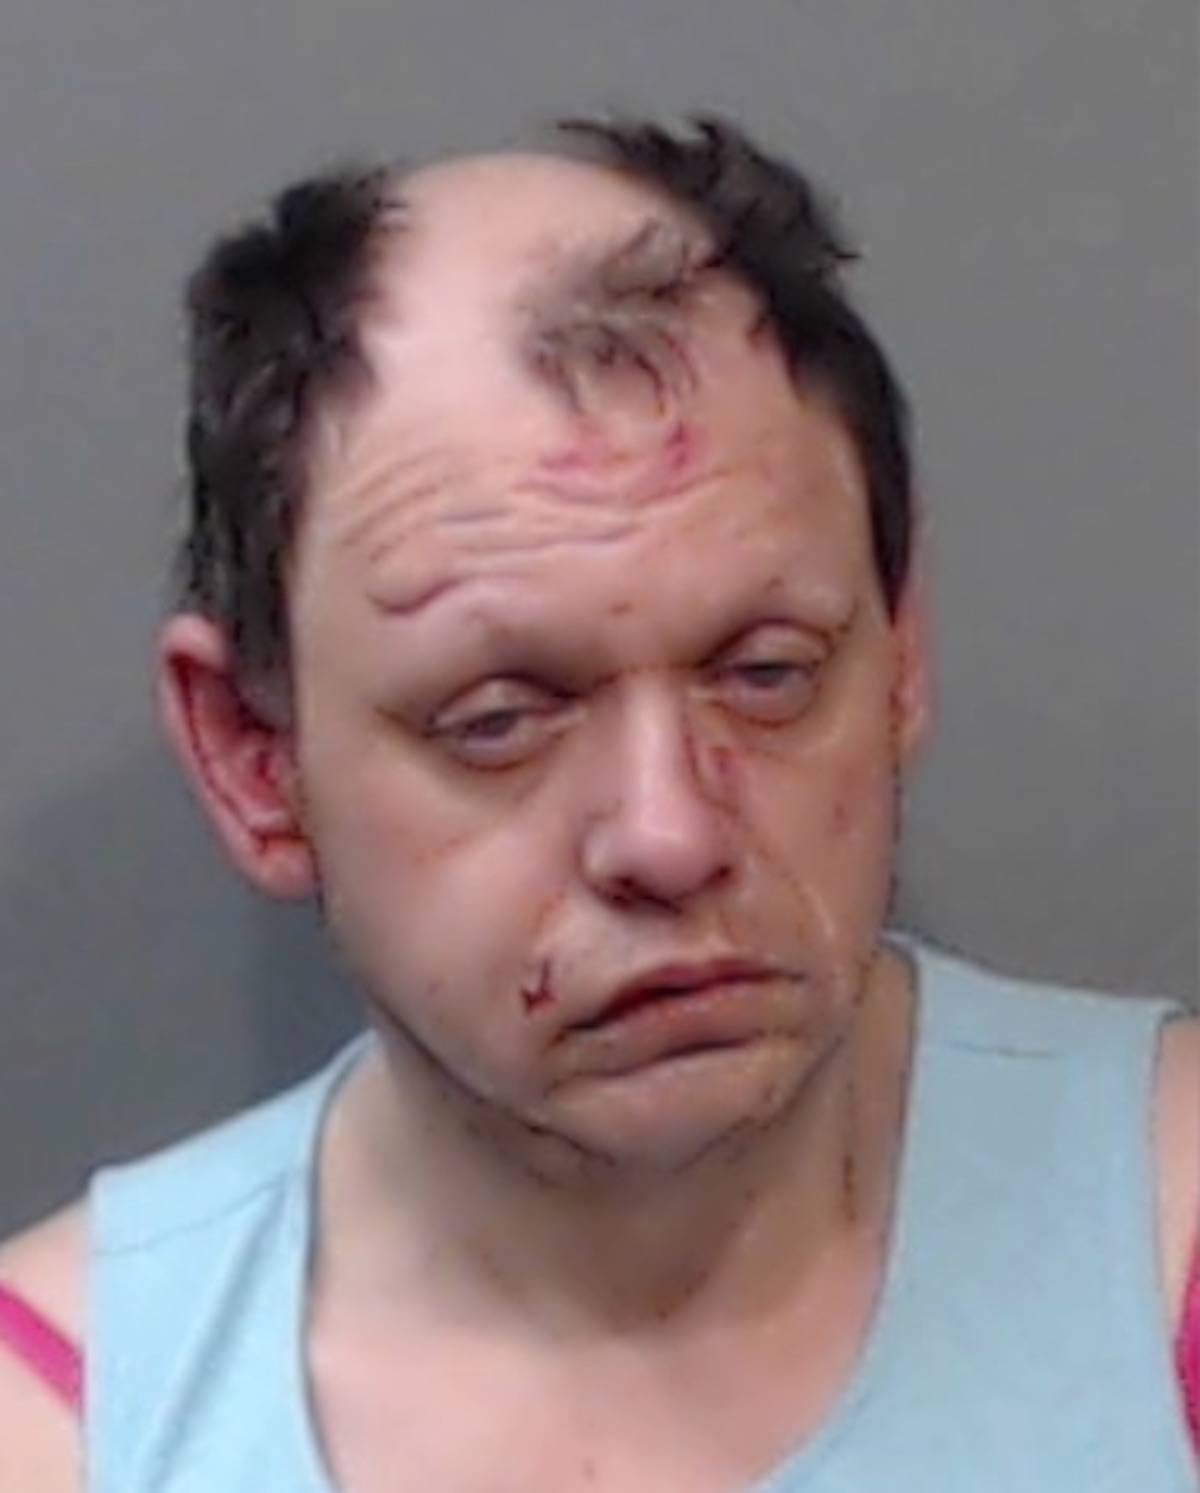 """Name: CHRISTIE, Gary Age: 52 Height: 5'8"""" ft Weight: 150 lbs Hair: Brown Eyes: Green Wanted: Possession of Stolen Property Warrant in effect: June 1, 2021 Parole Jurisdiction: Chilliwack, BC"""